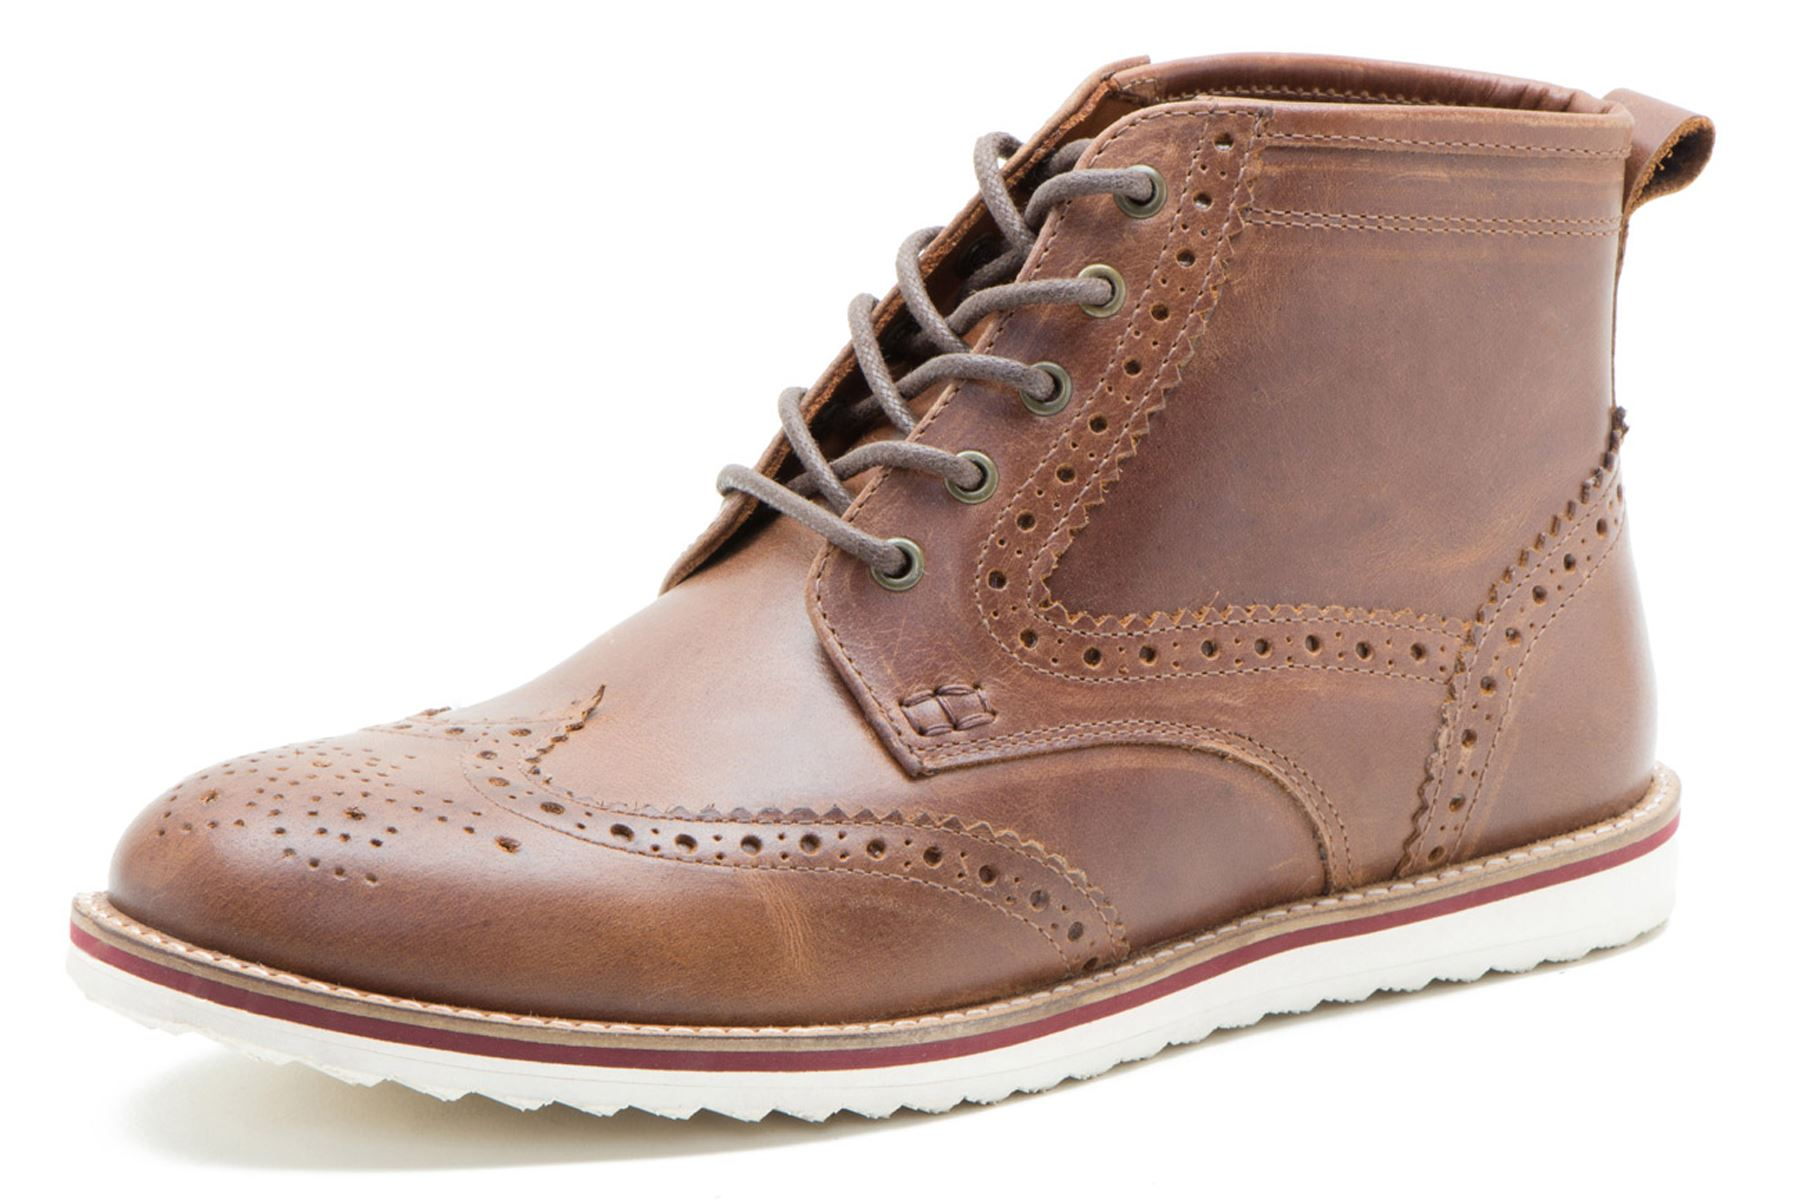 Red Tape Horwood Leather Brogue Lace Up Contrast Sole Mens Boots Tan